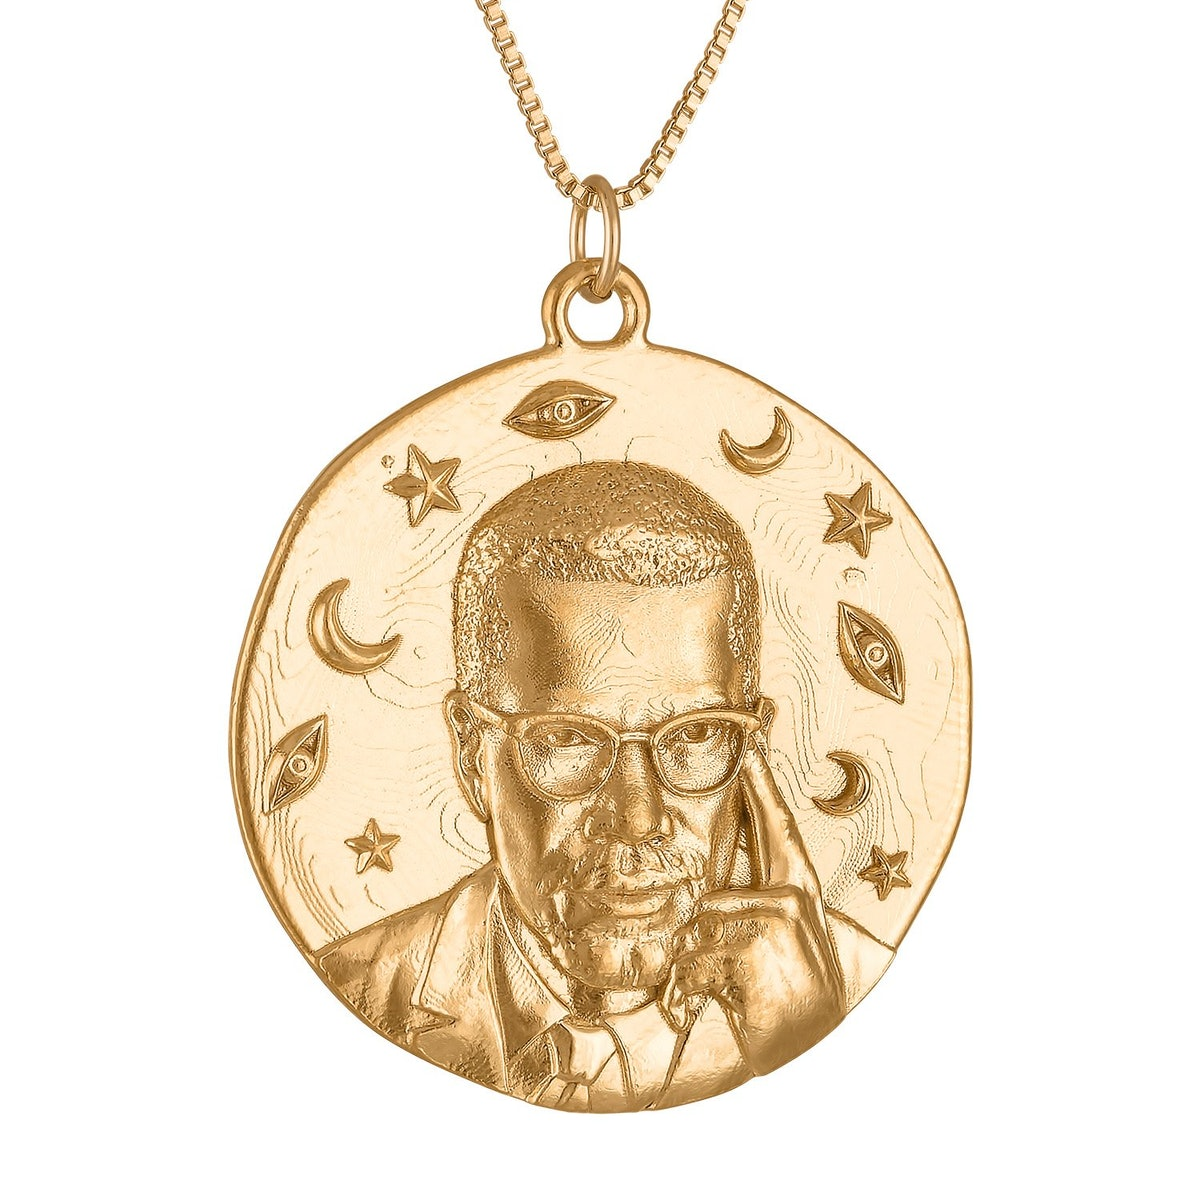 Malcolm X large gold vermilion medallion necklace from Black-owned jewelry brand SEWIT SIUM.